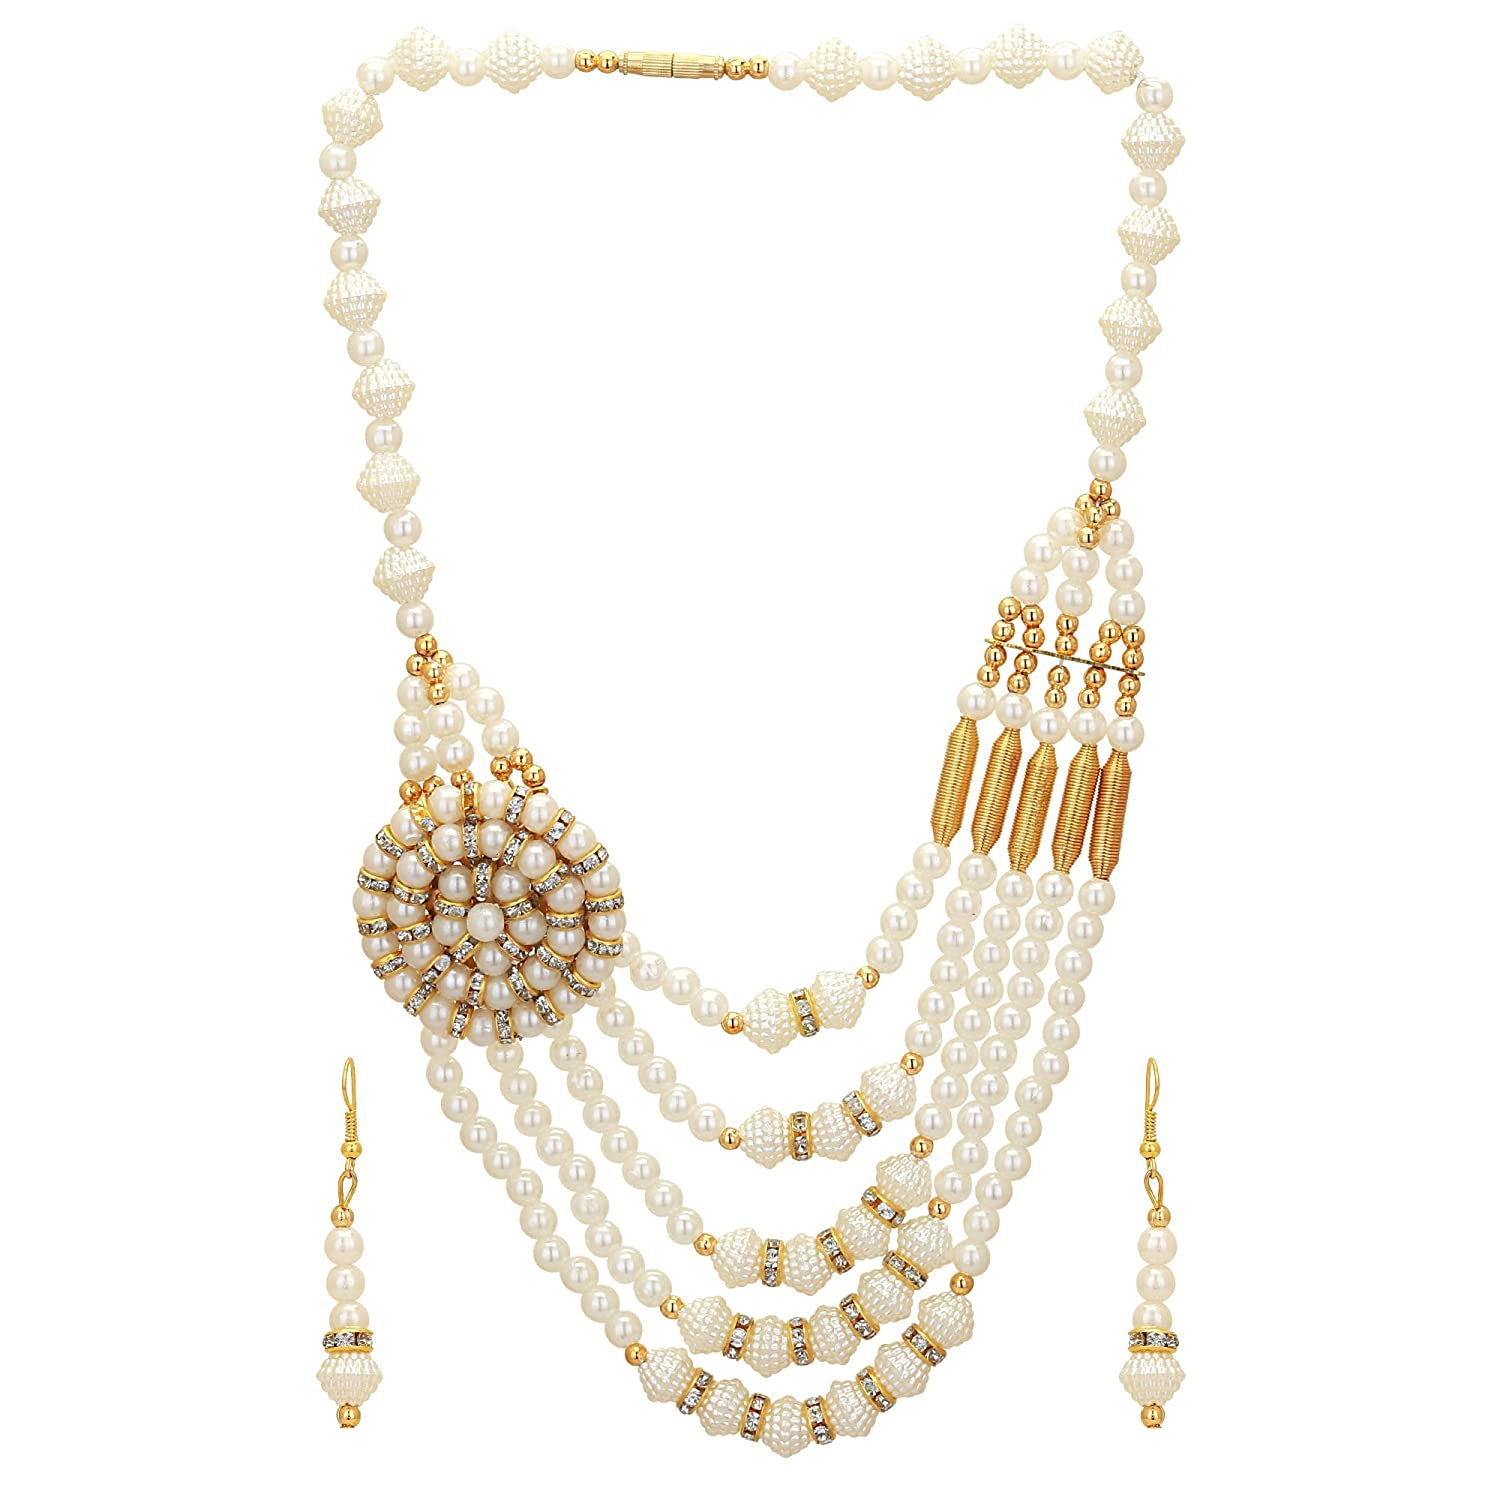 a1dc2f260b9 Buy Aarvi Collections Gold Plated Multi Strand Necklace with Beautiful  Creamy Pearls for Women Girls. Online at Low Prices in India